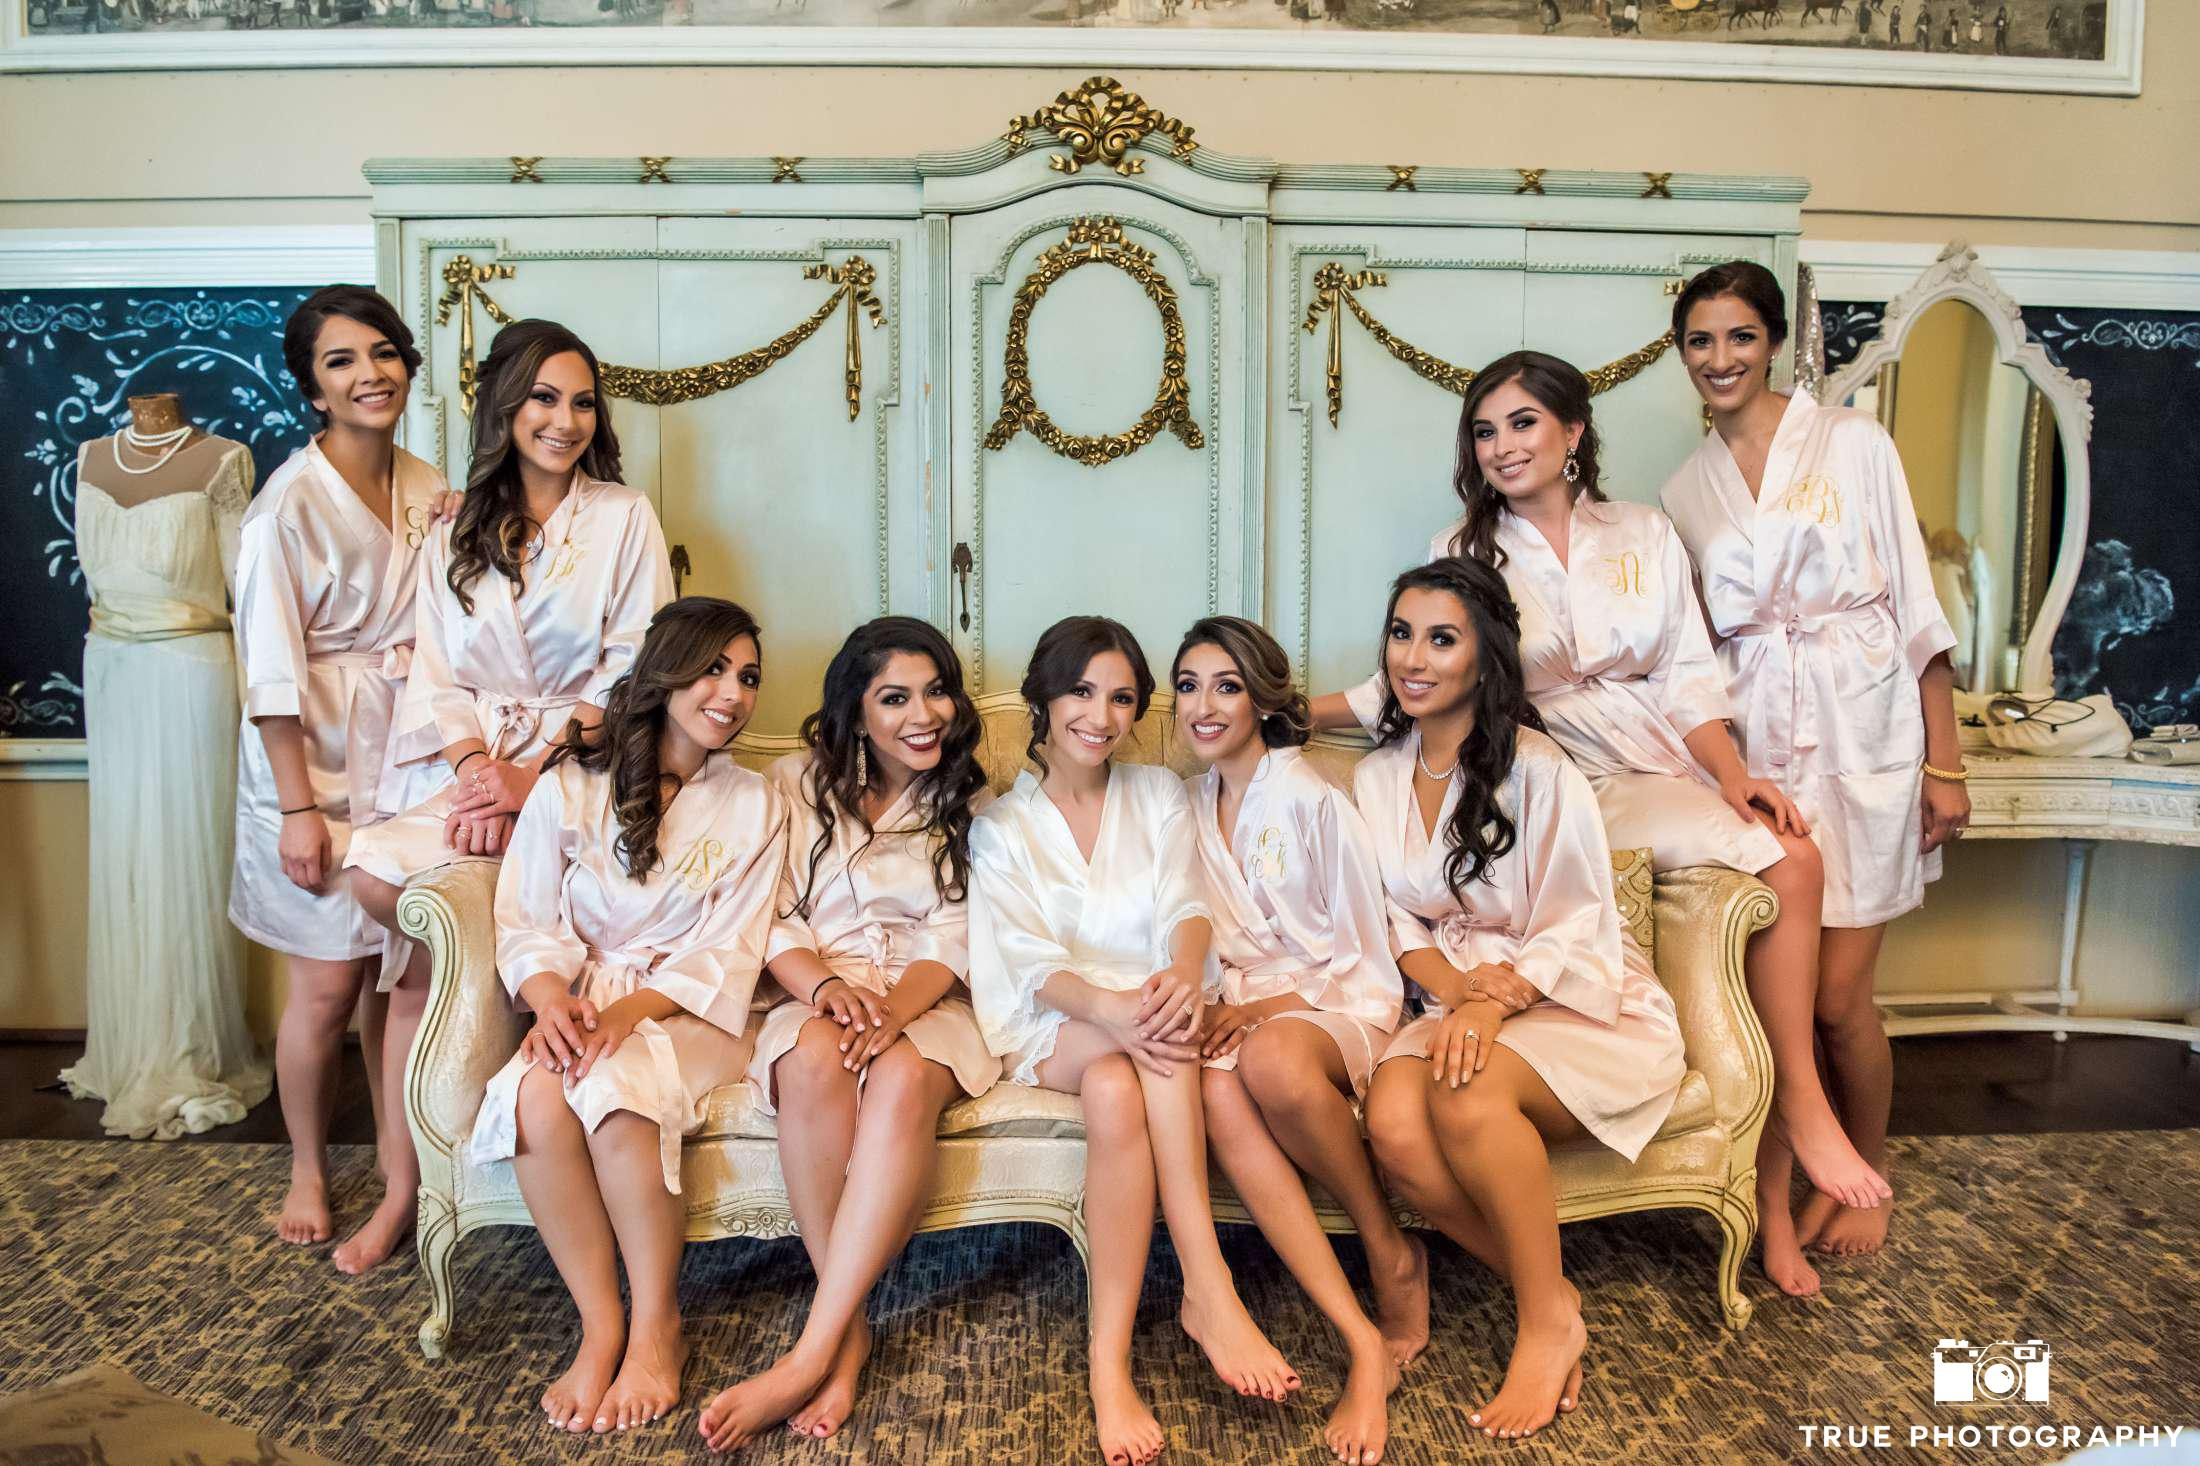 Morning of Wedding Bridesmaids in Robes with Makeup and Hair